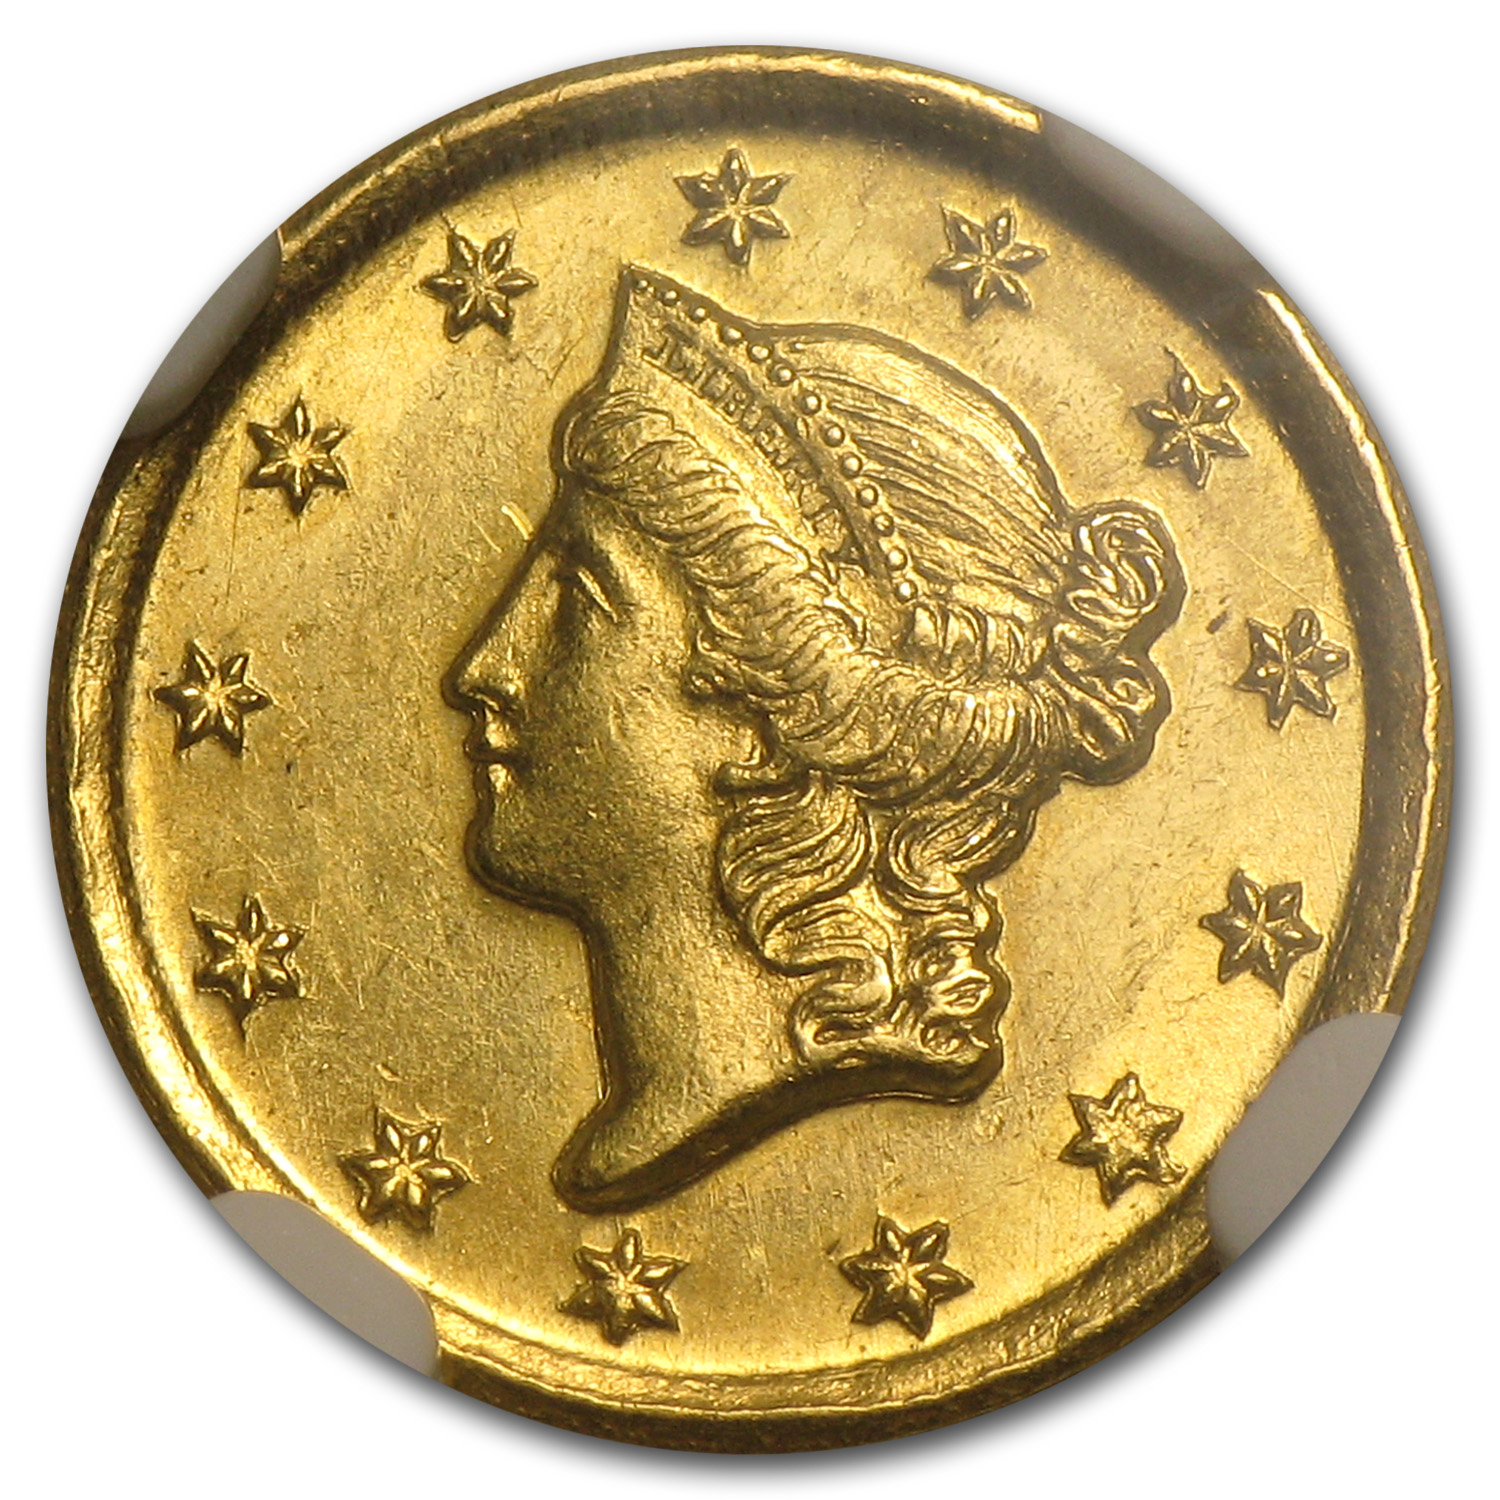 1849-O $1 Liberty Head Gold Open Wreath MS-62 NGC